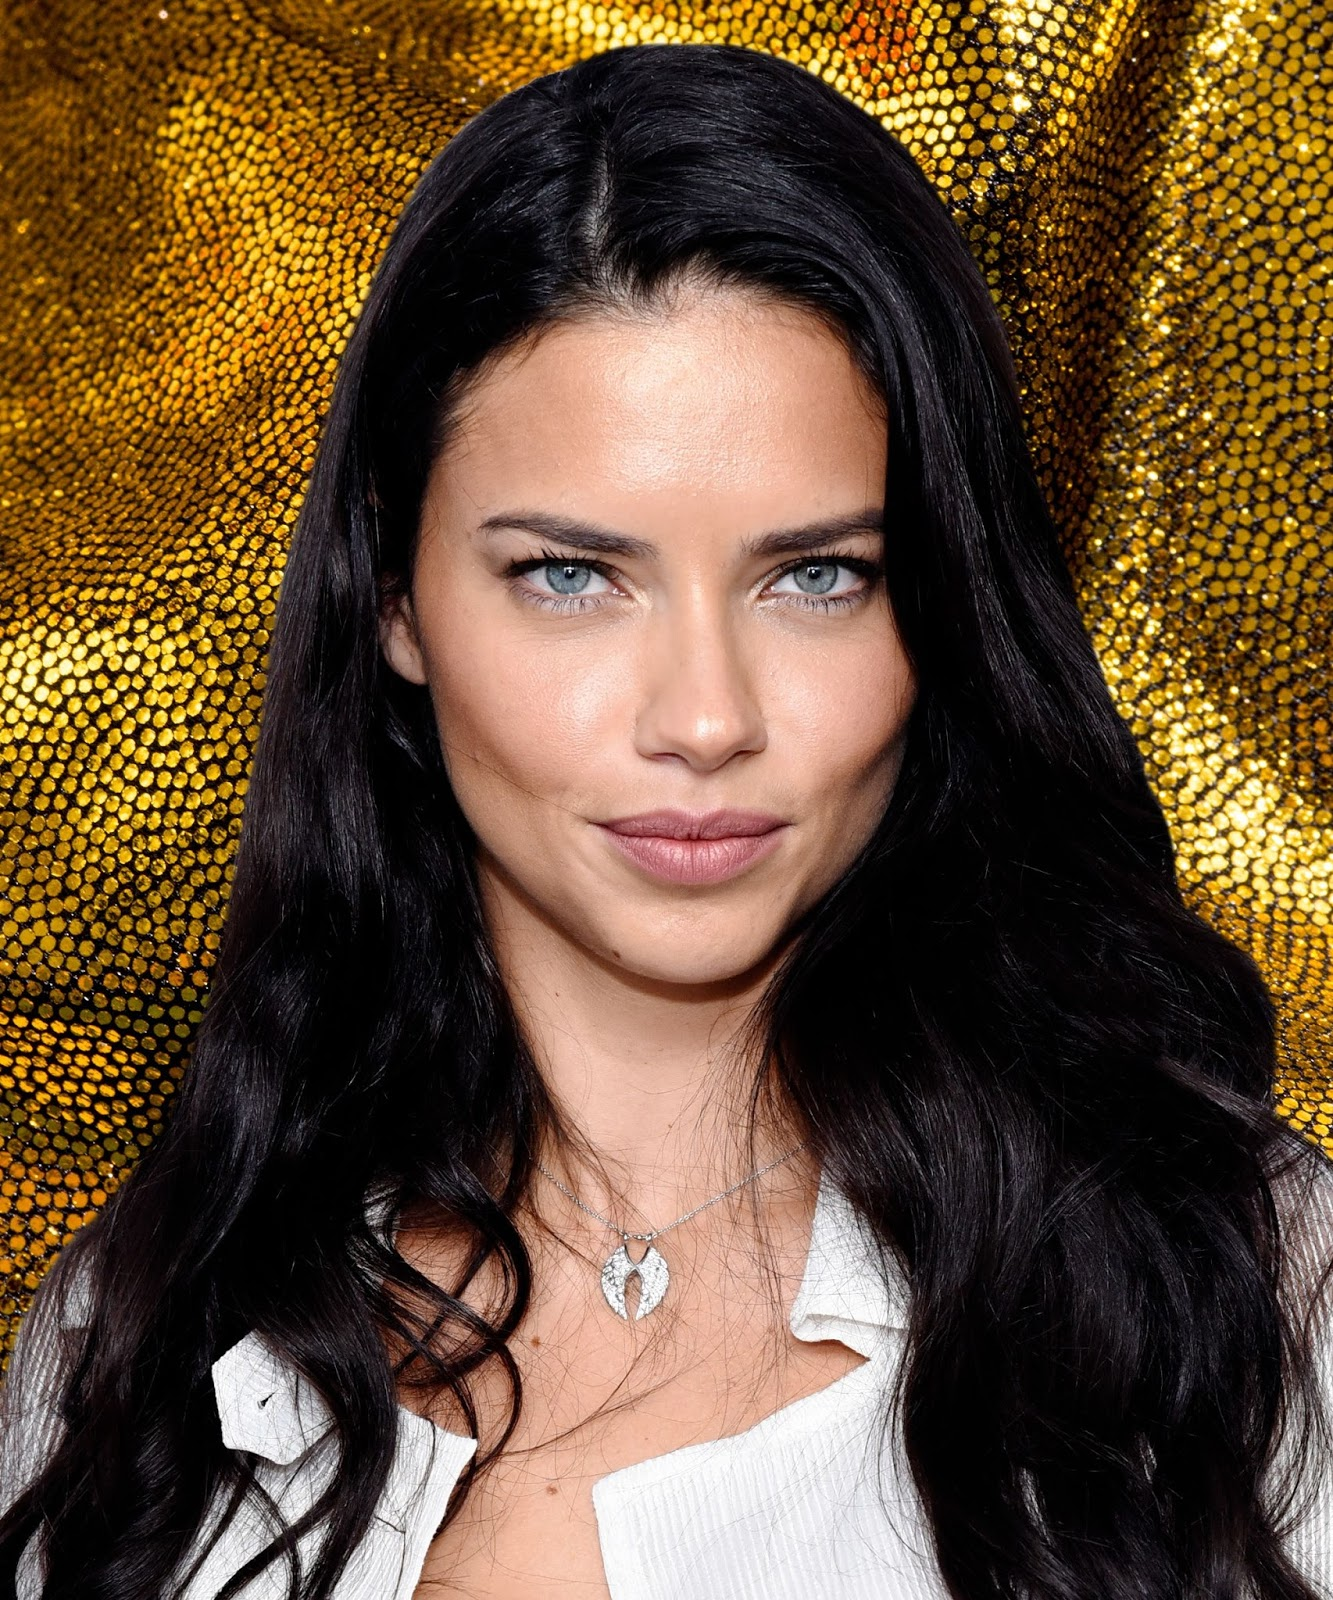 Adriana Lima: Ultimate Bachelor Party : The Exotic Women